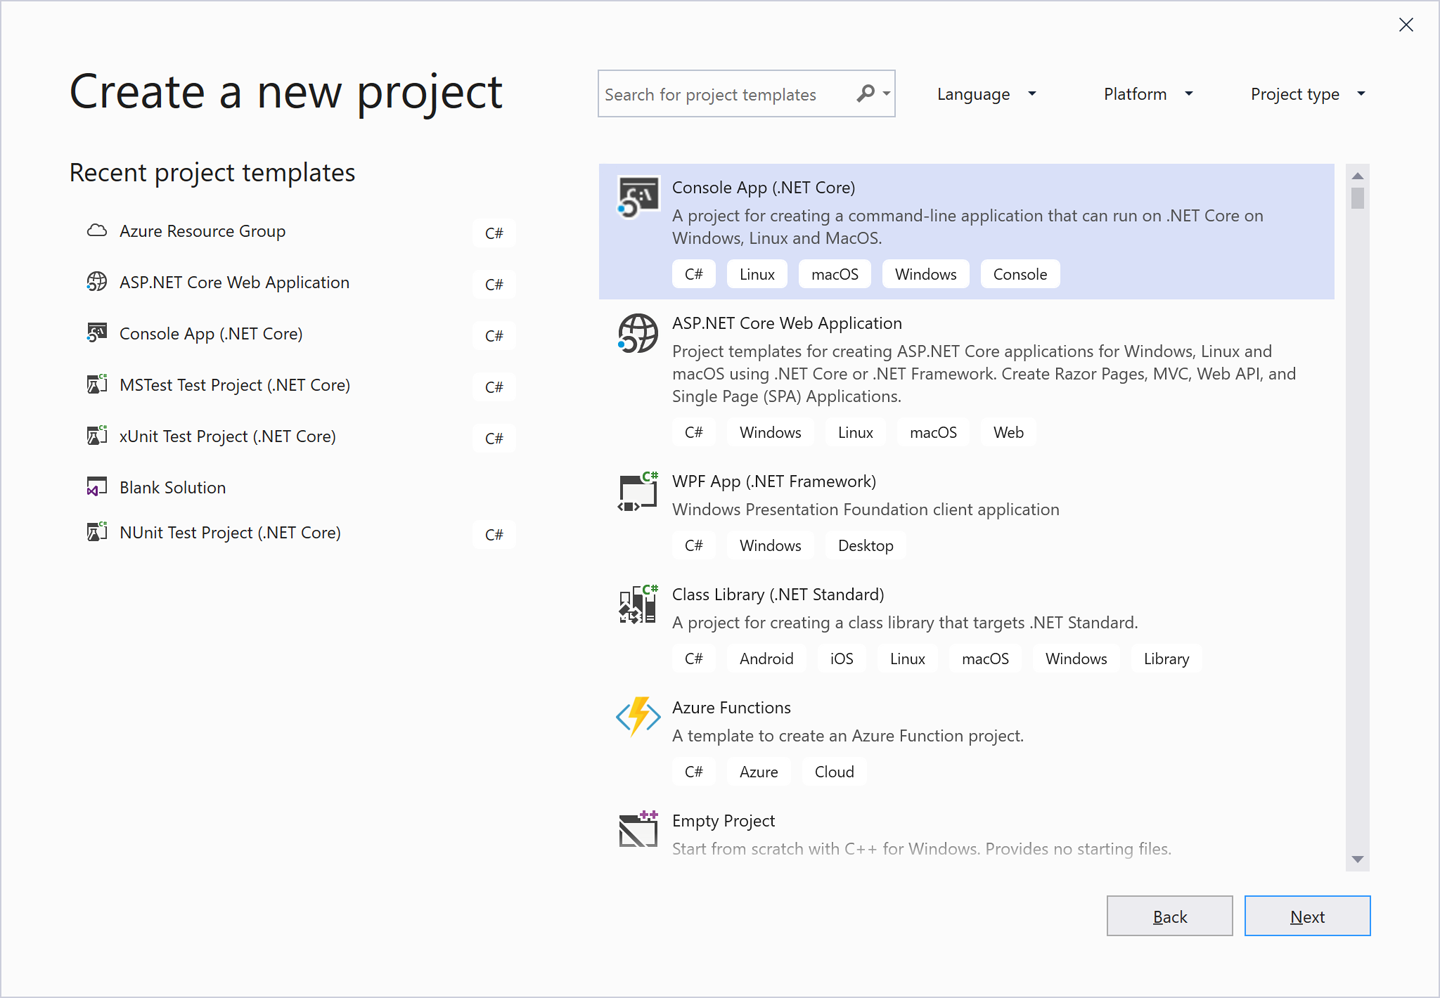 Visual Studio's Create a new project dialog